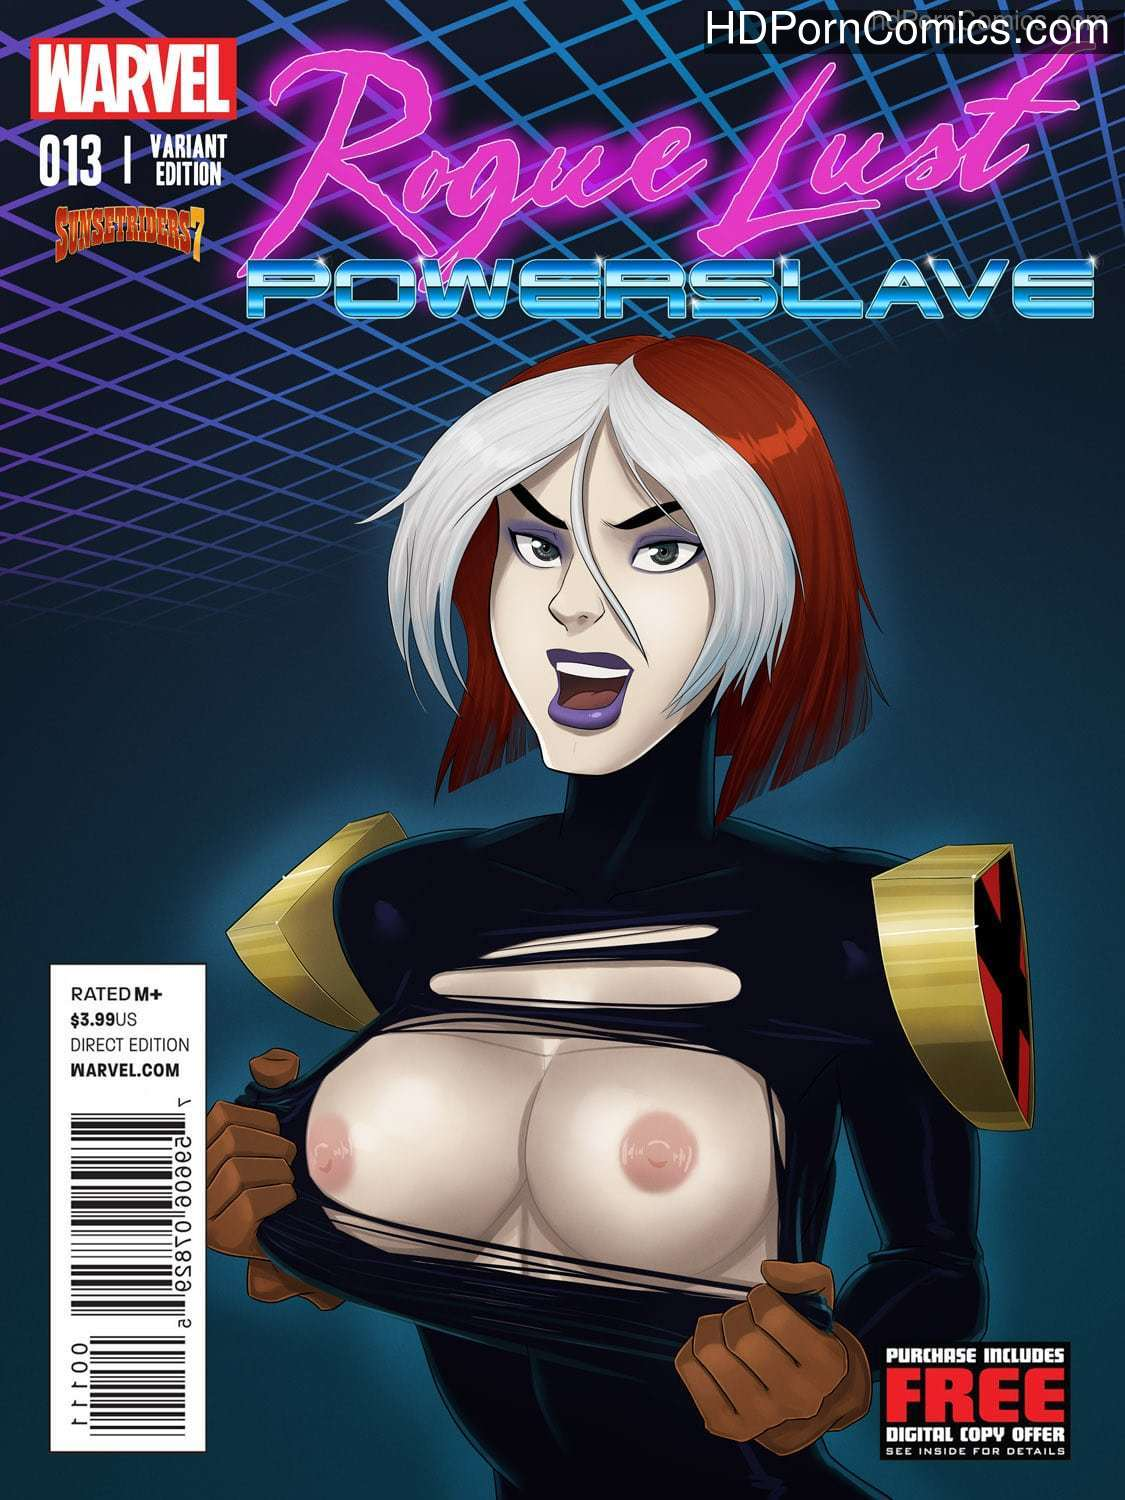 Xxx comic- WARVEL- Rogue Lust Powerslave1 free sex comic